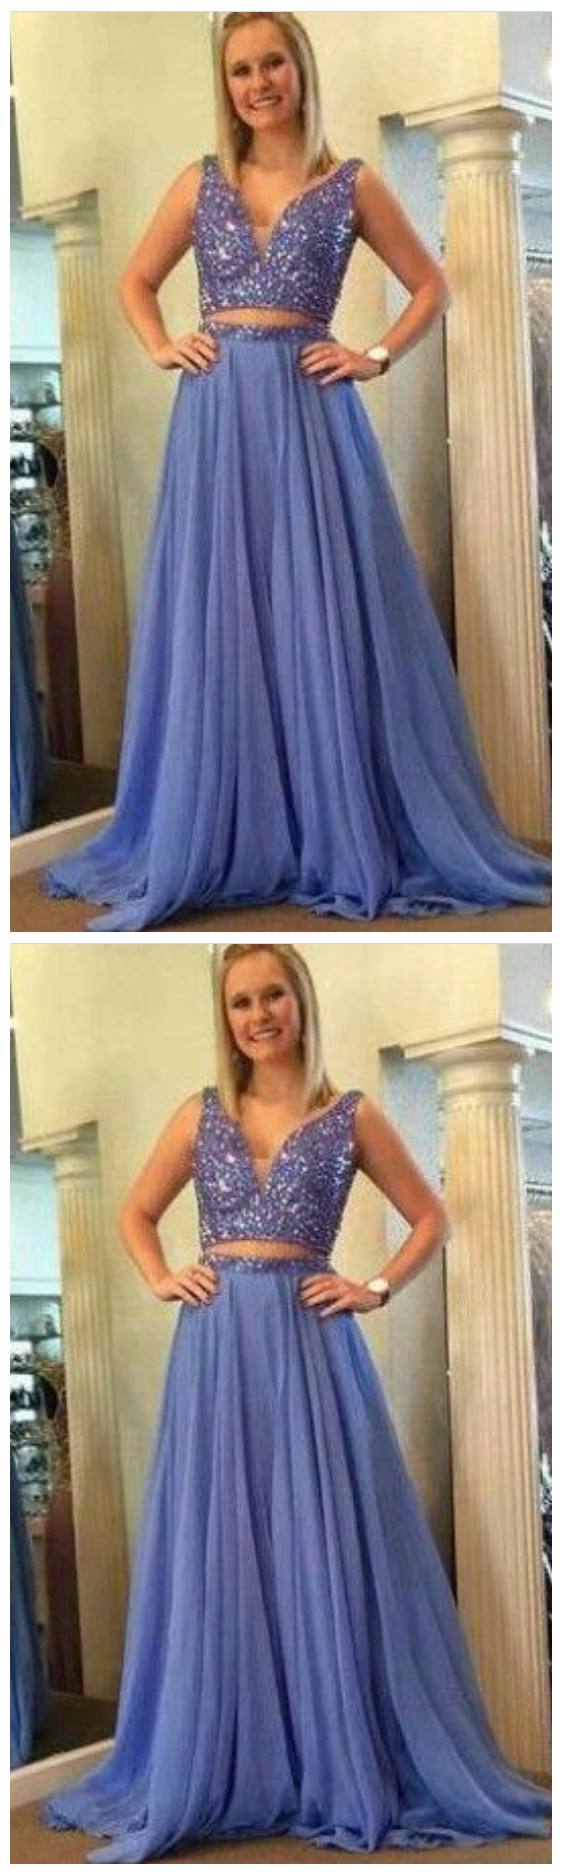 Two Pieces Long Prom Dress with Beading Sweet 16 Dance Dress Fashion Winter